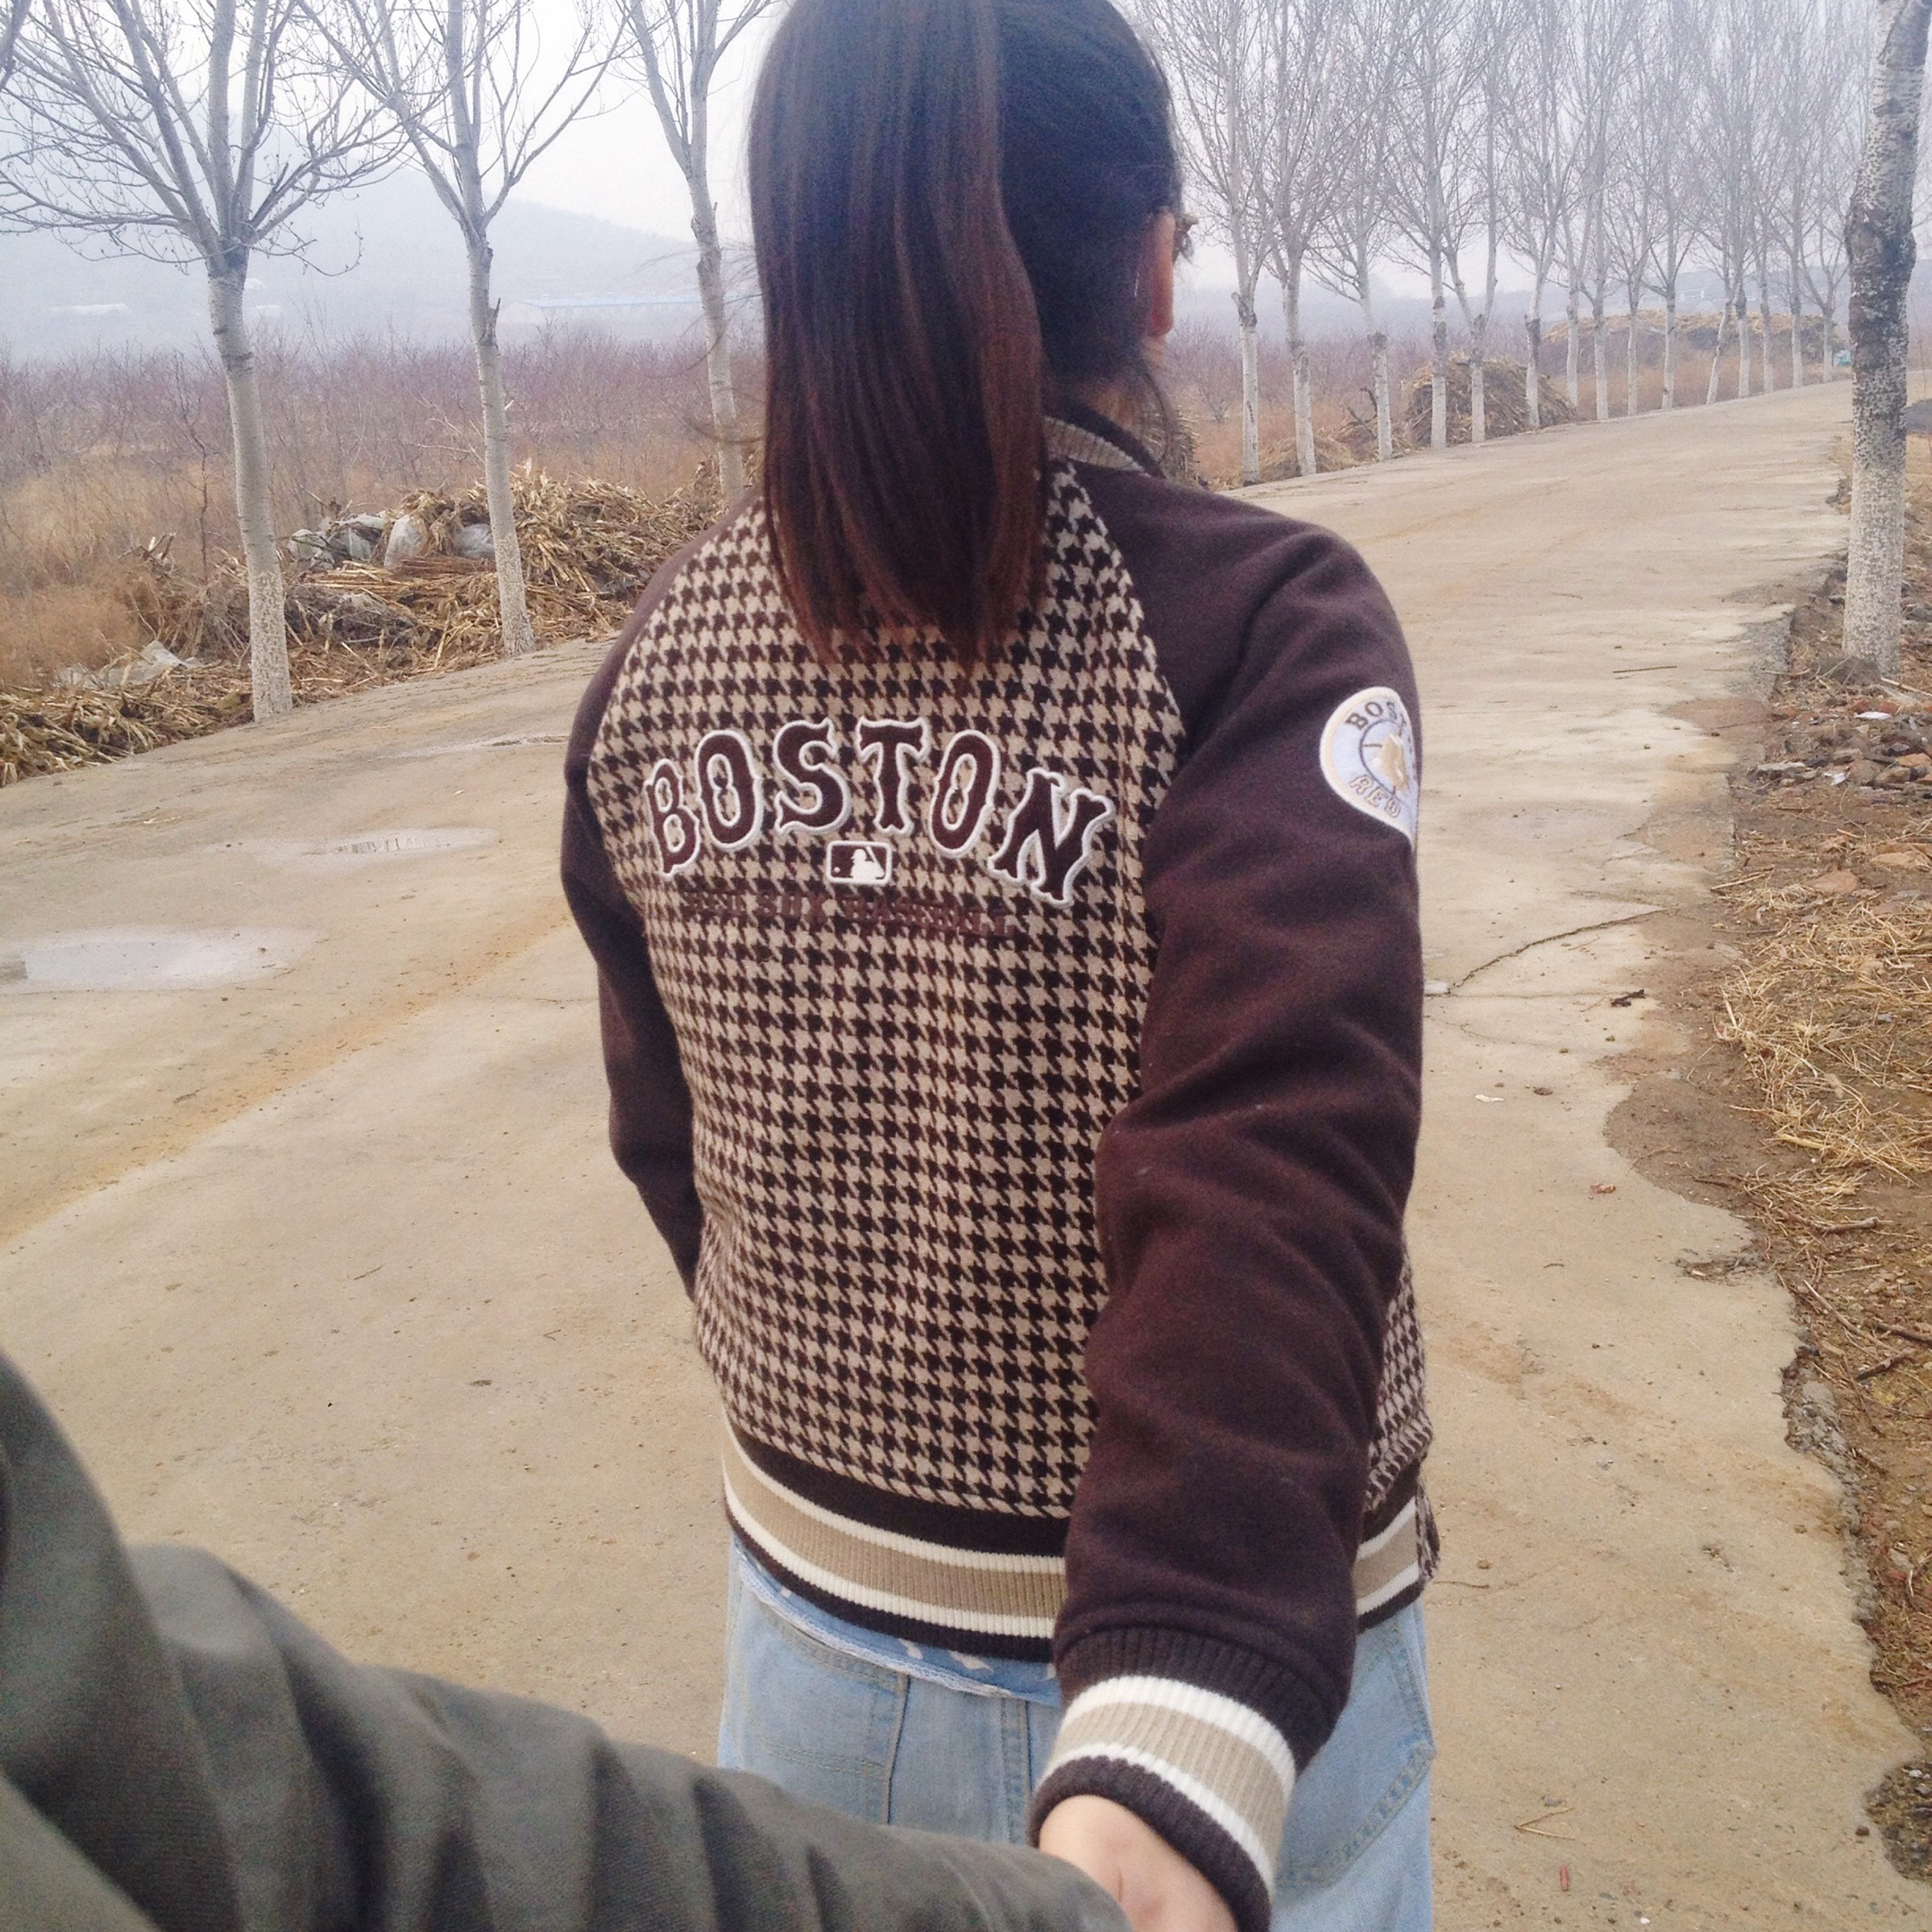 lifestyles, leisure activity, casual clothing, rear view, standing, three quarter length, person, tree, warm clothing, day, focus on foreground, long hair, outdoors, sunlight, young adult, field, waist up